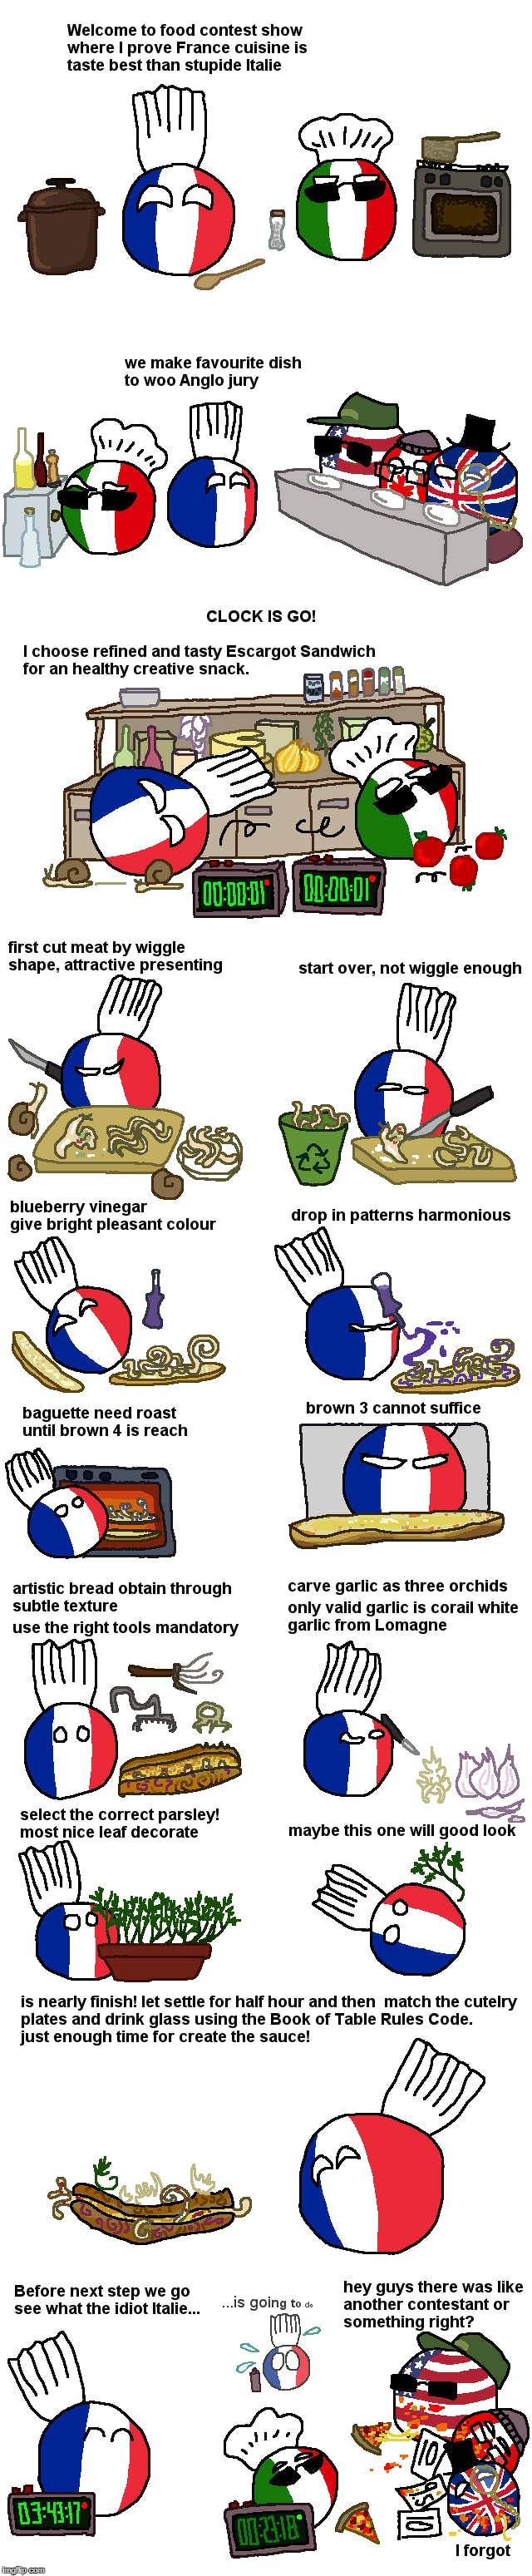 France and Italy, Cooking Contest | image tagged in countryballs,france,italy,anglo | made w/ Imgflip meme maker